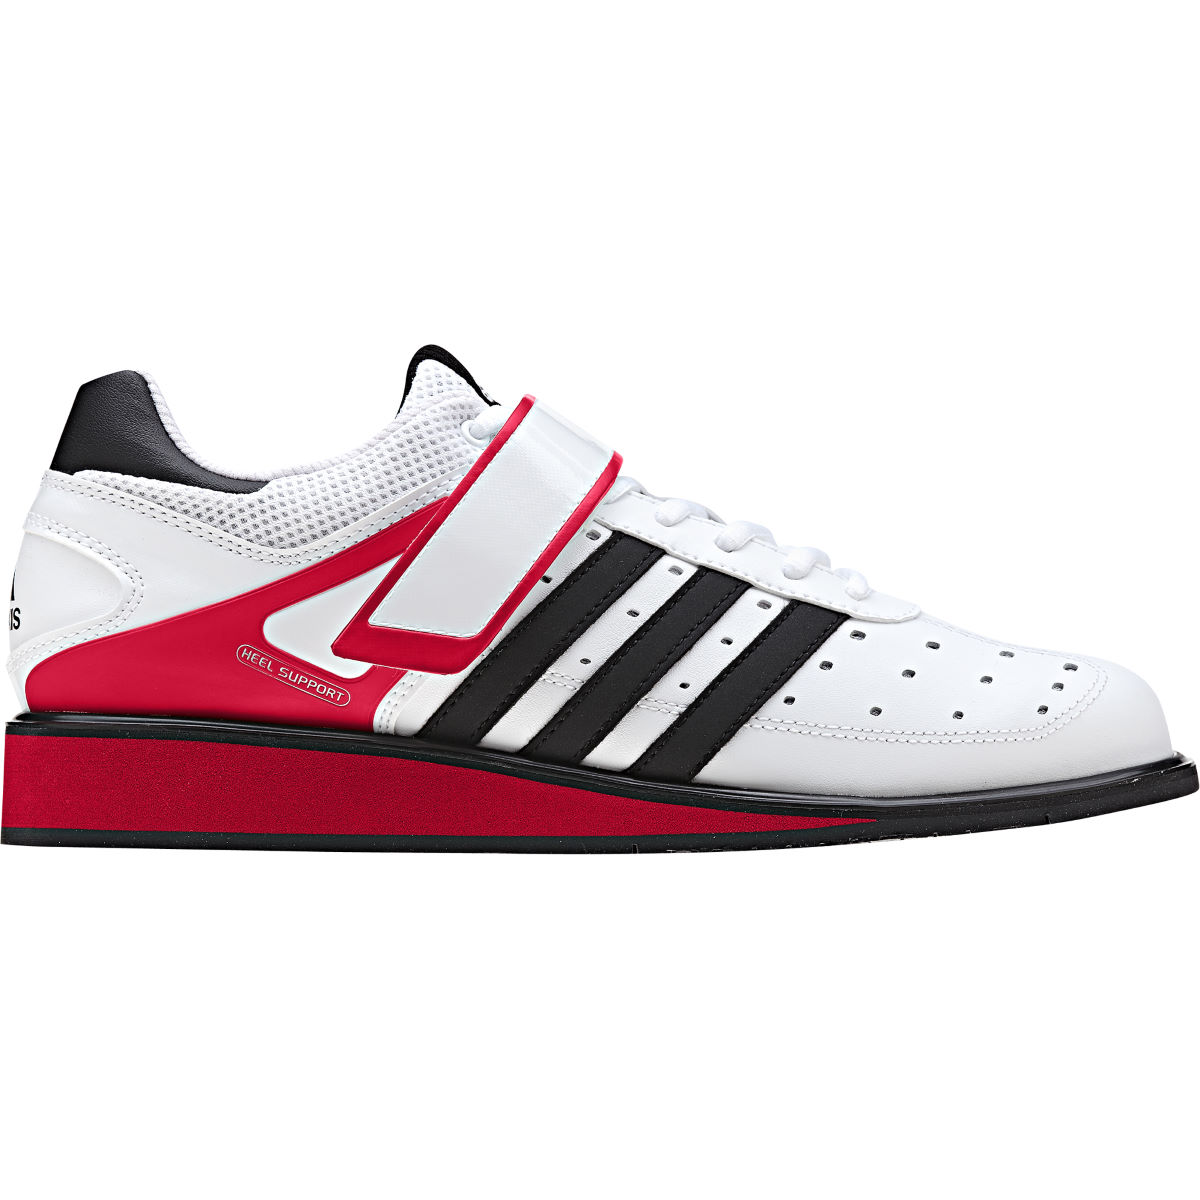 Zapatillas adidas Power Perfect II Weightlifting - Zapatillas de entrenamiento con pesas